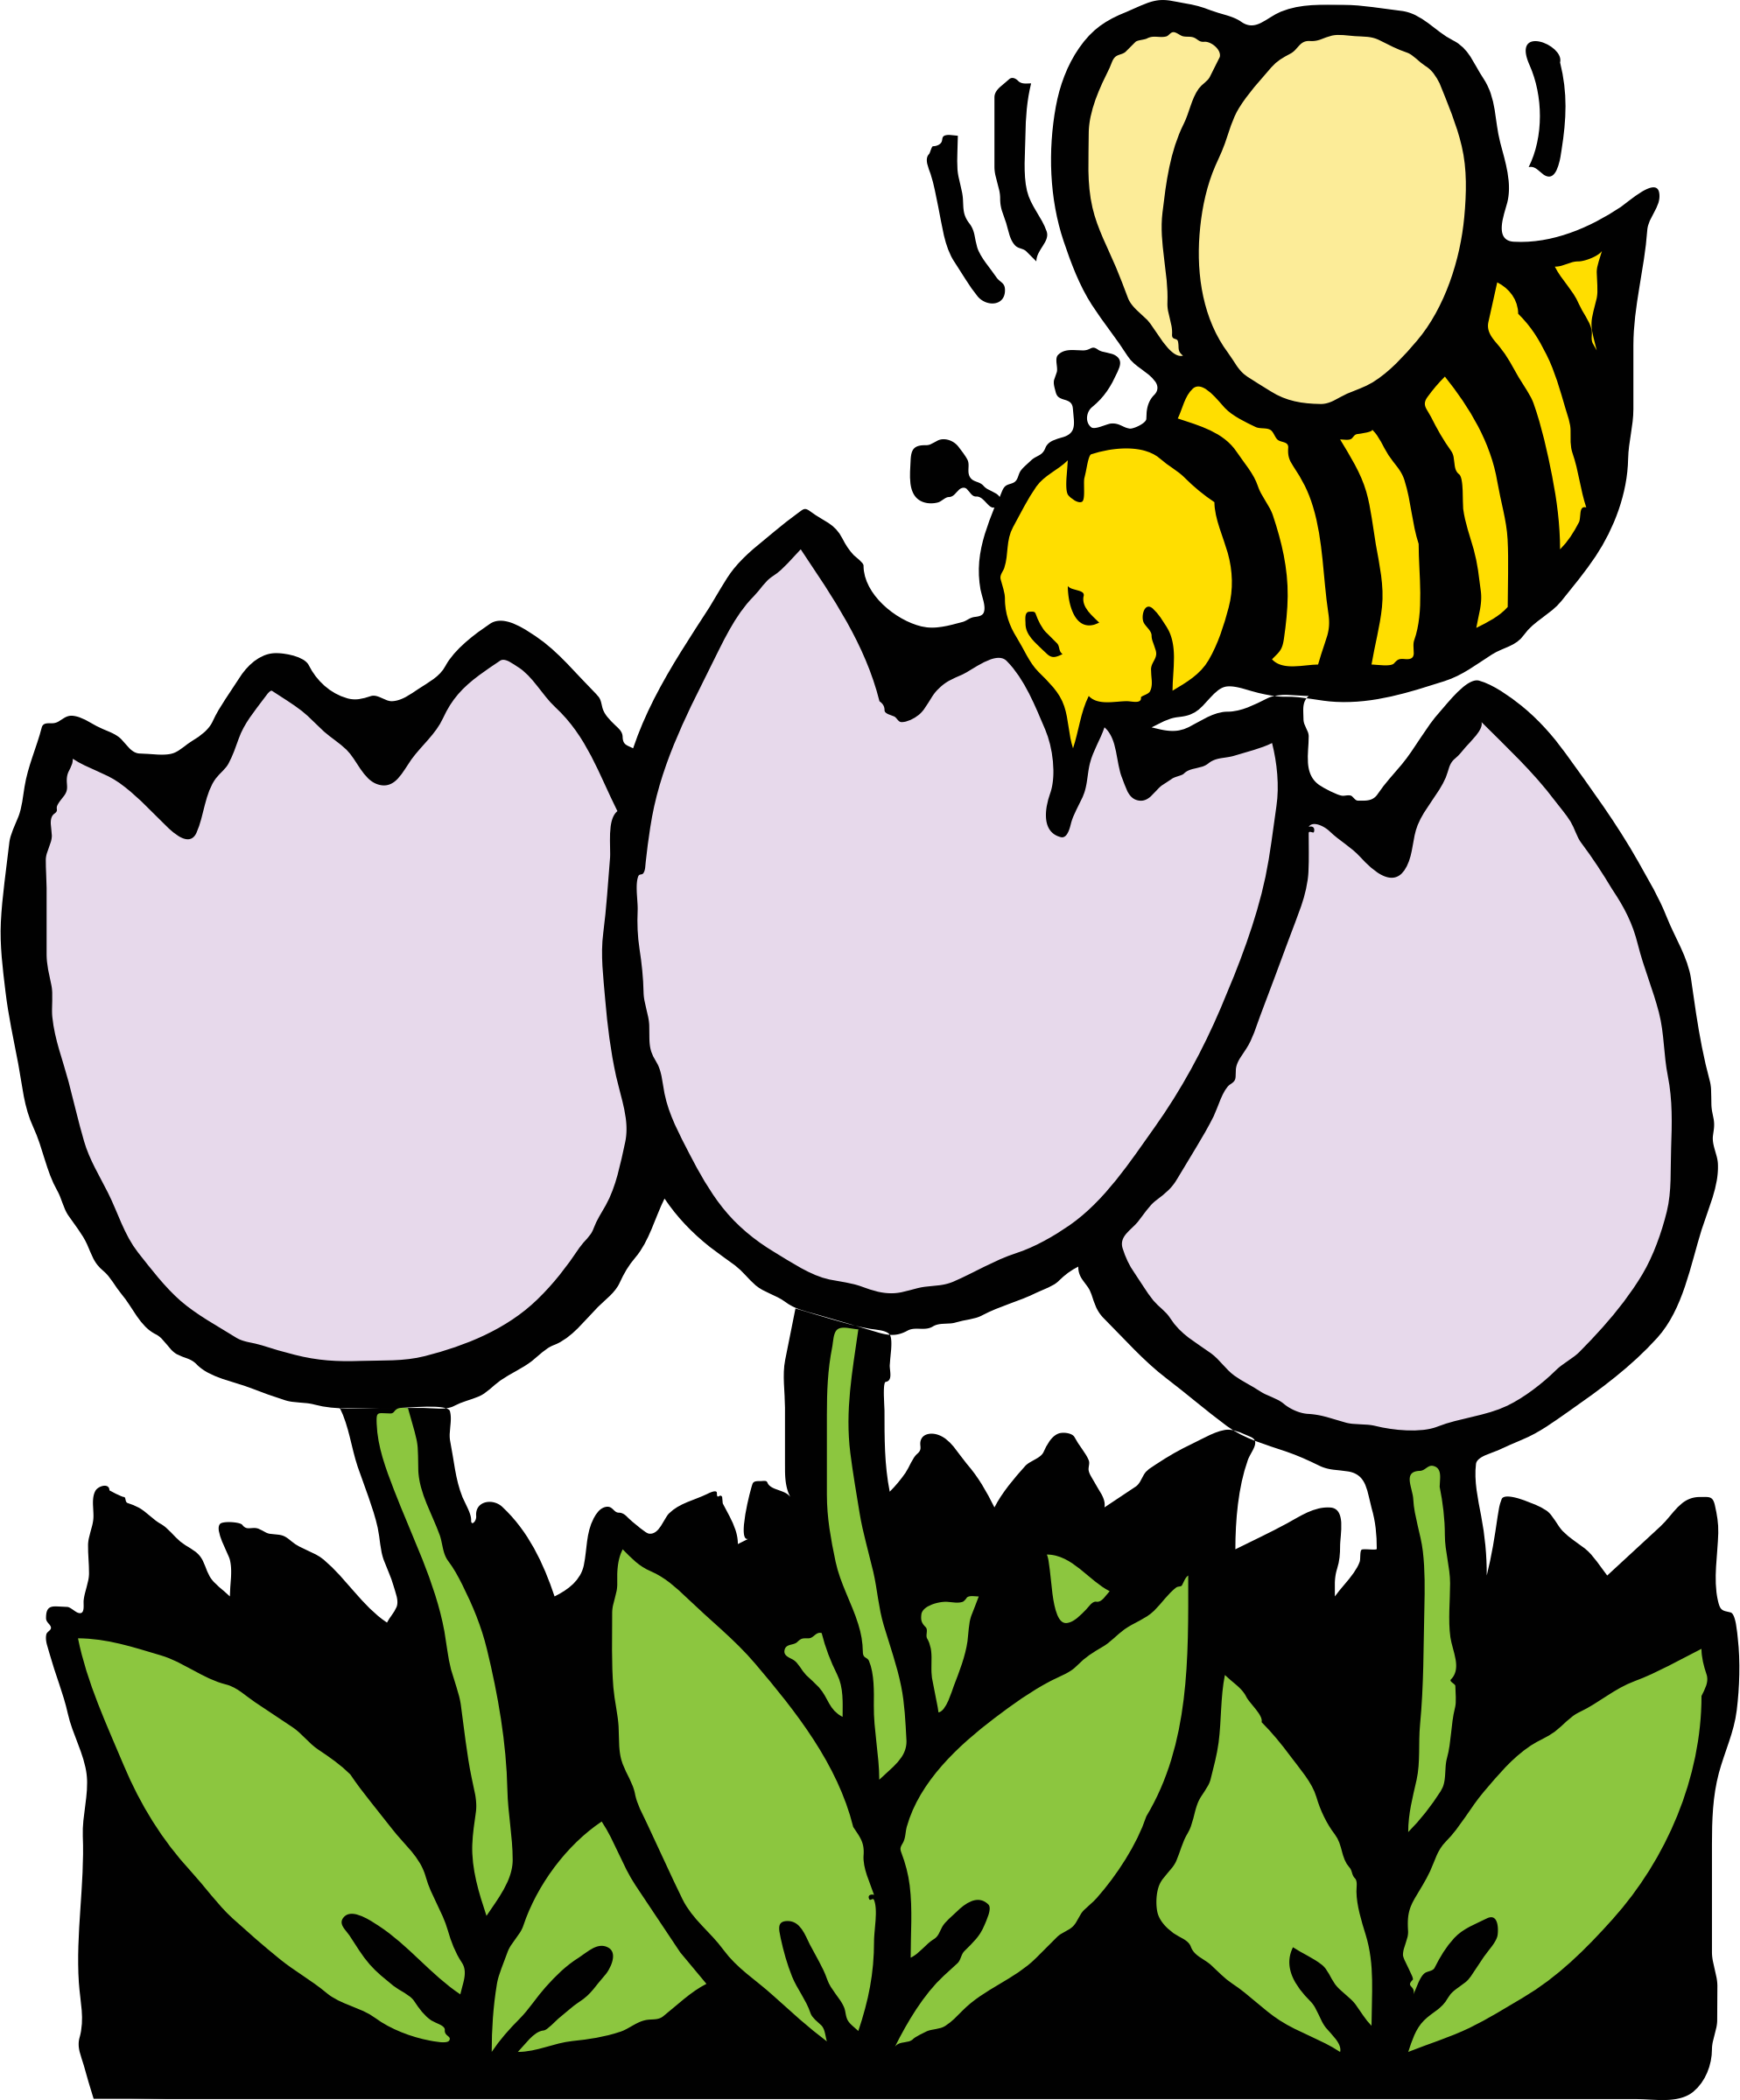 Farmer clipart bee. And flowers big image